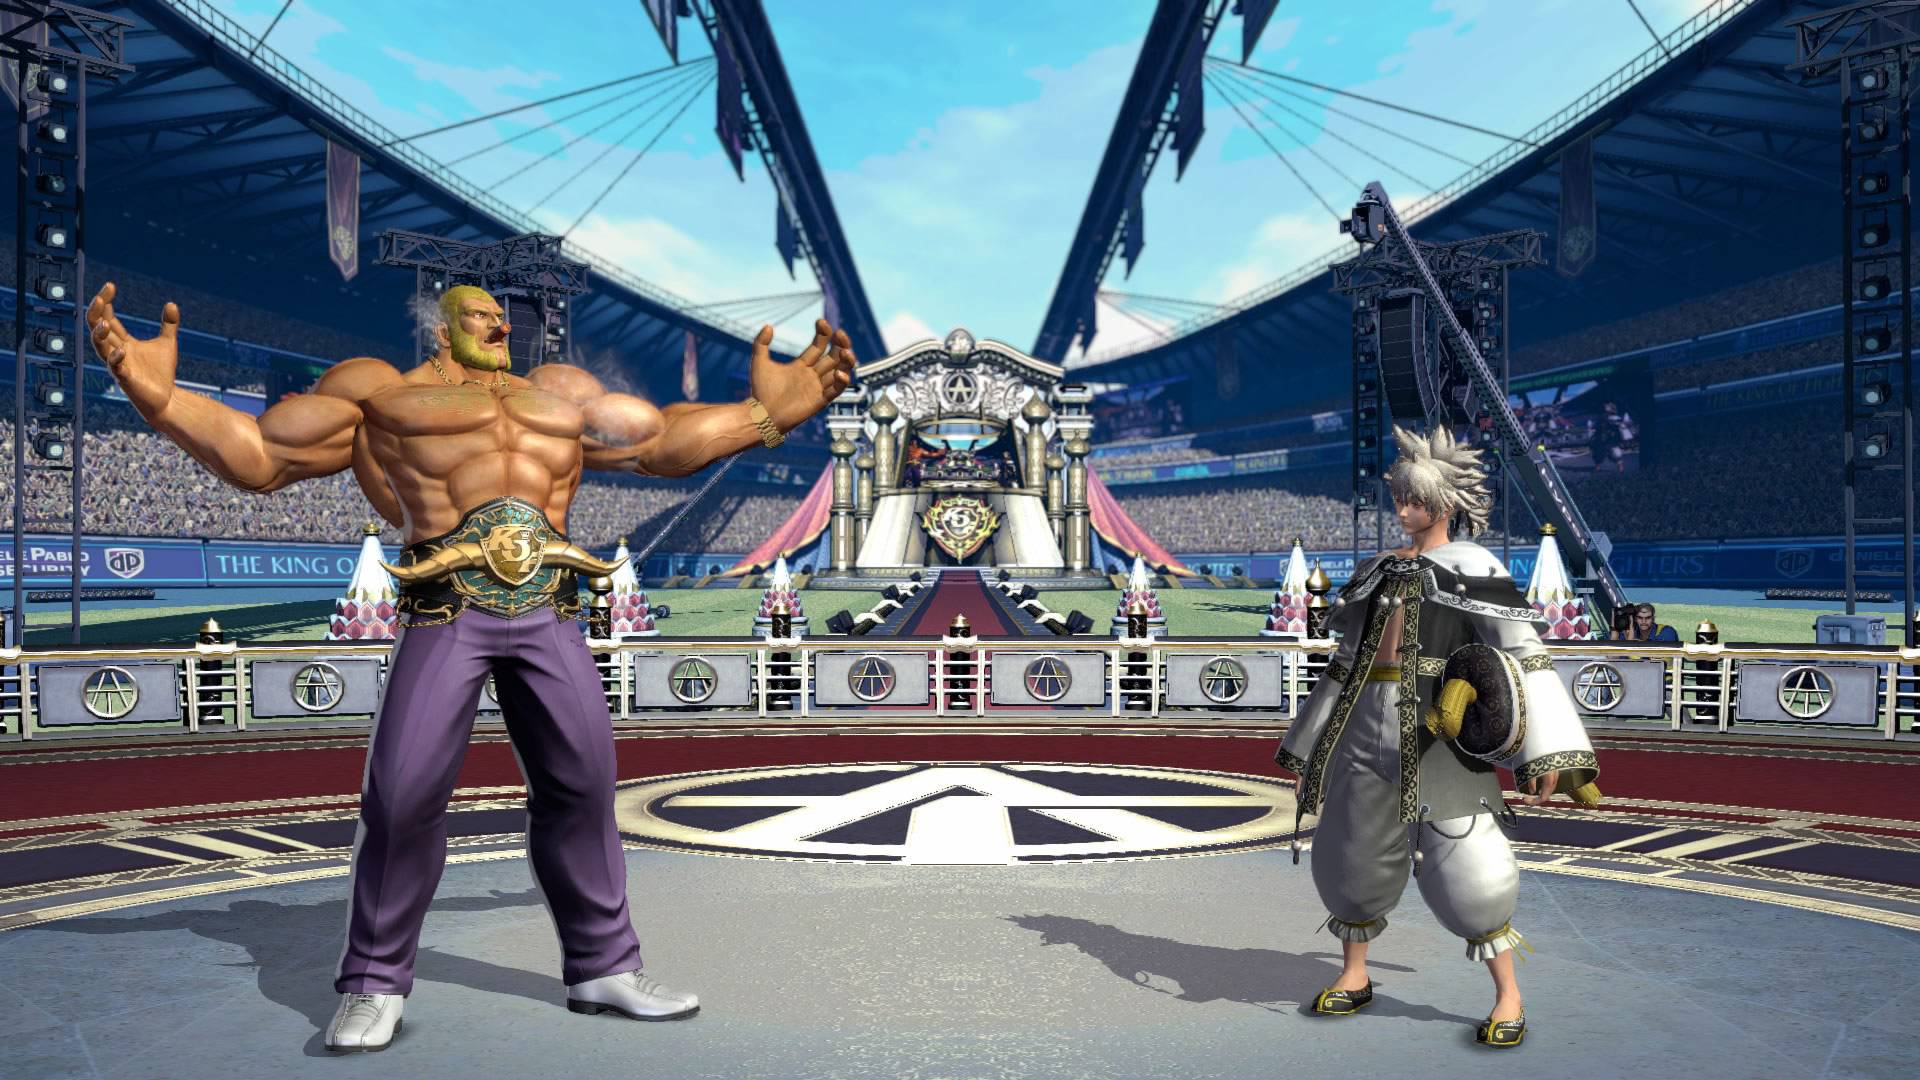 King of Fighters 14 1.10 graphics update 24 out of 60 image gallery